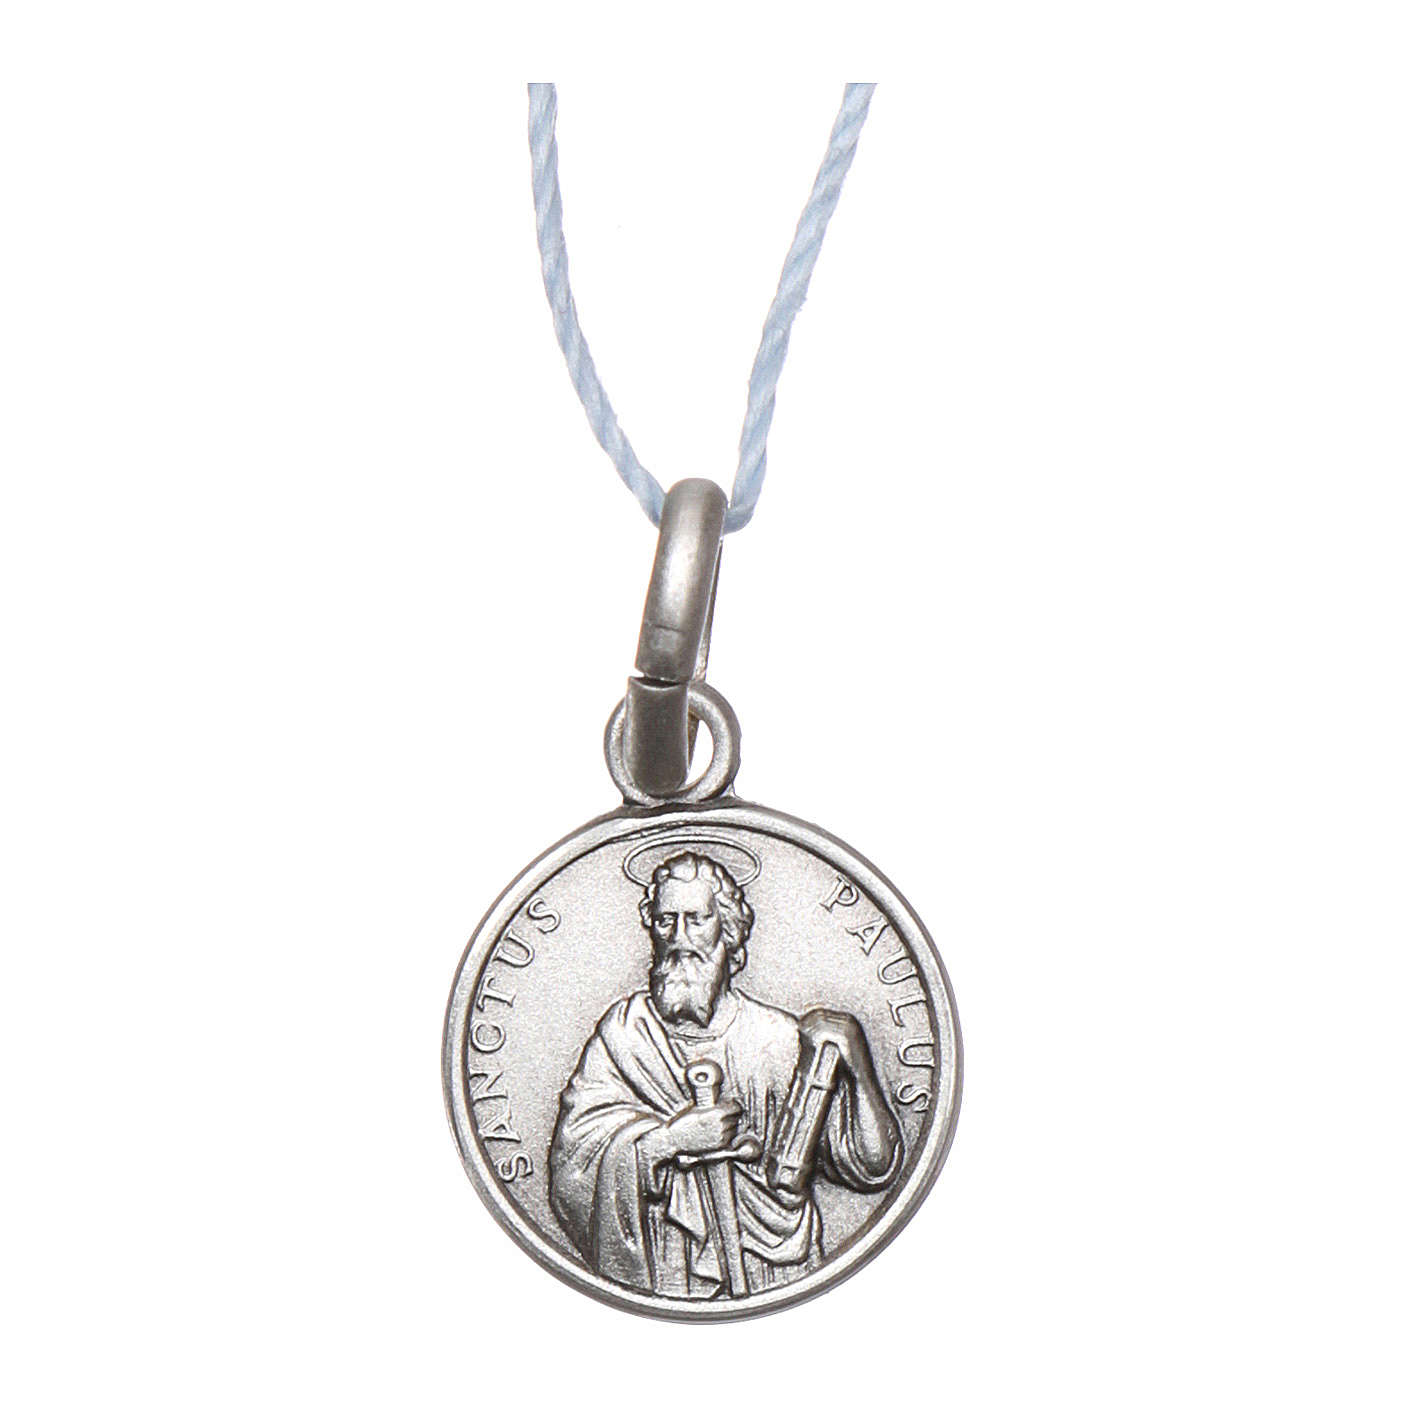 Rhodium plated medal with St. Paul 10 mm 4